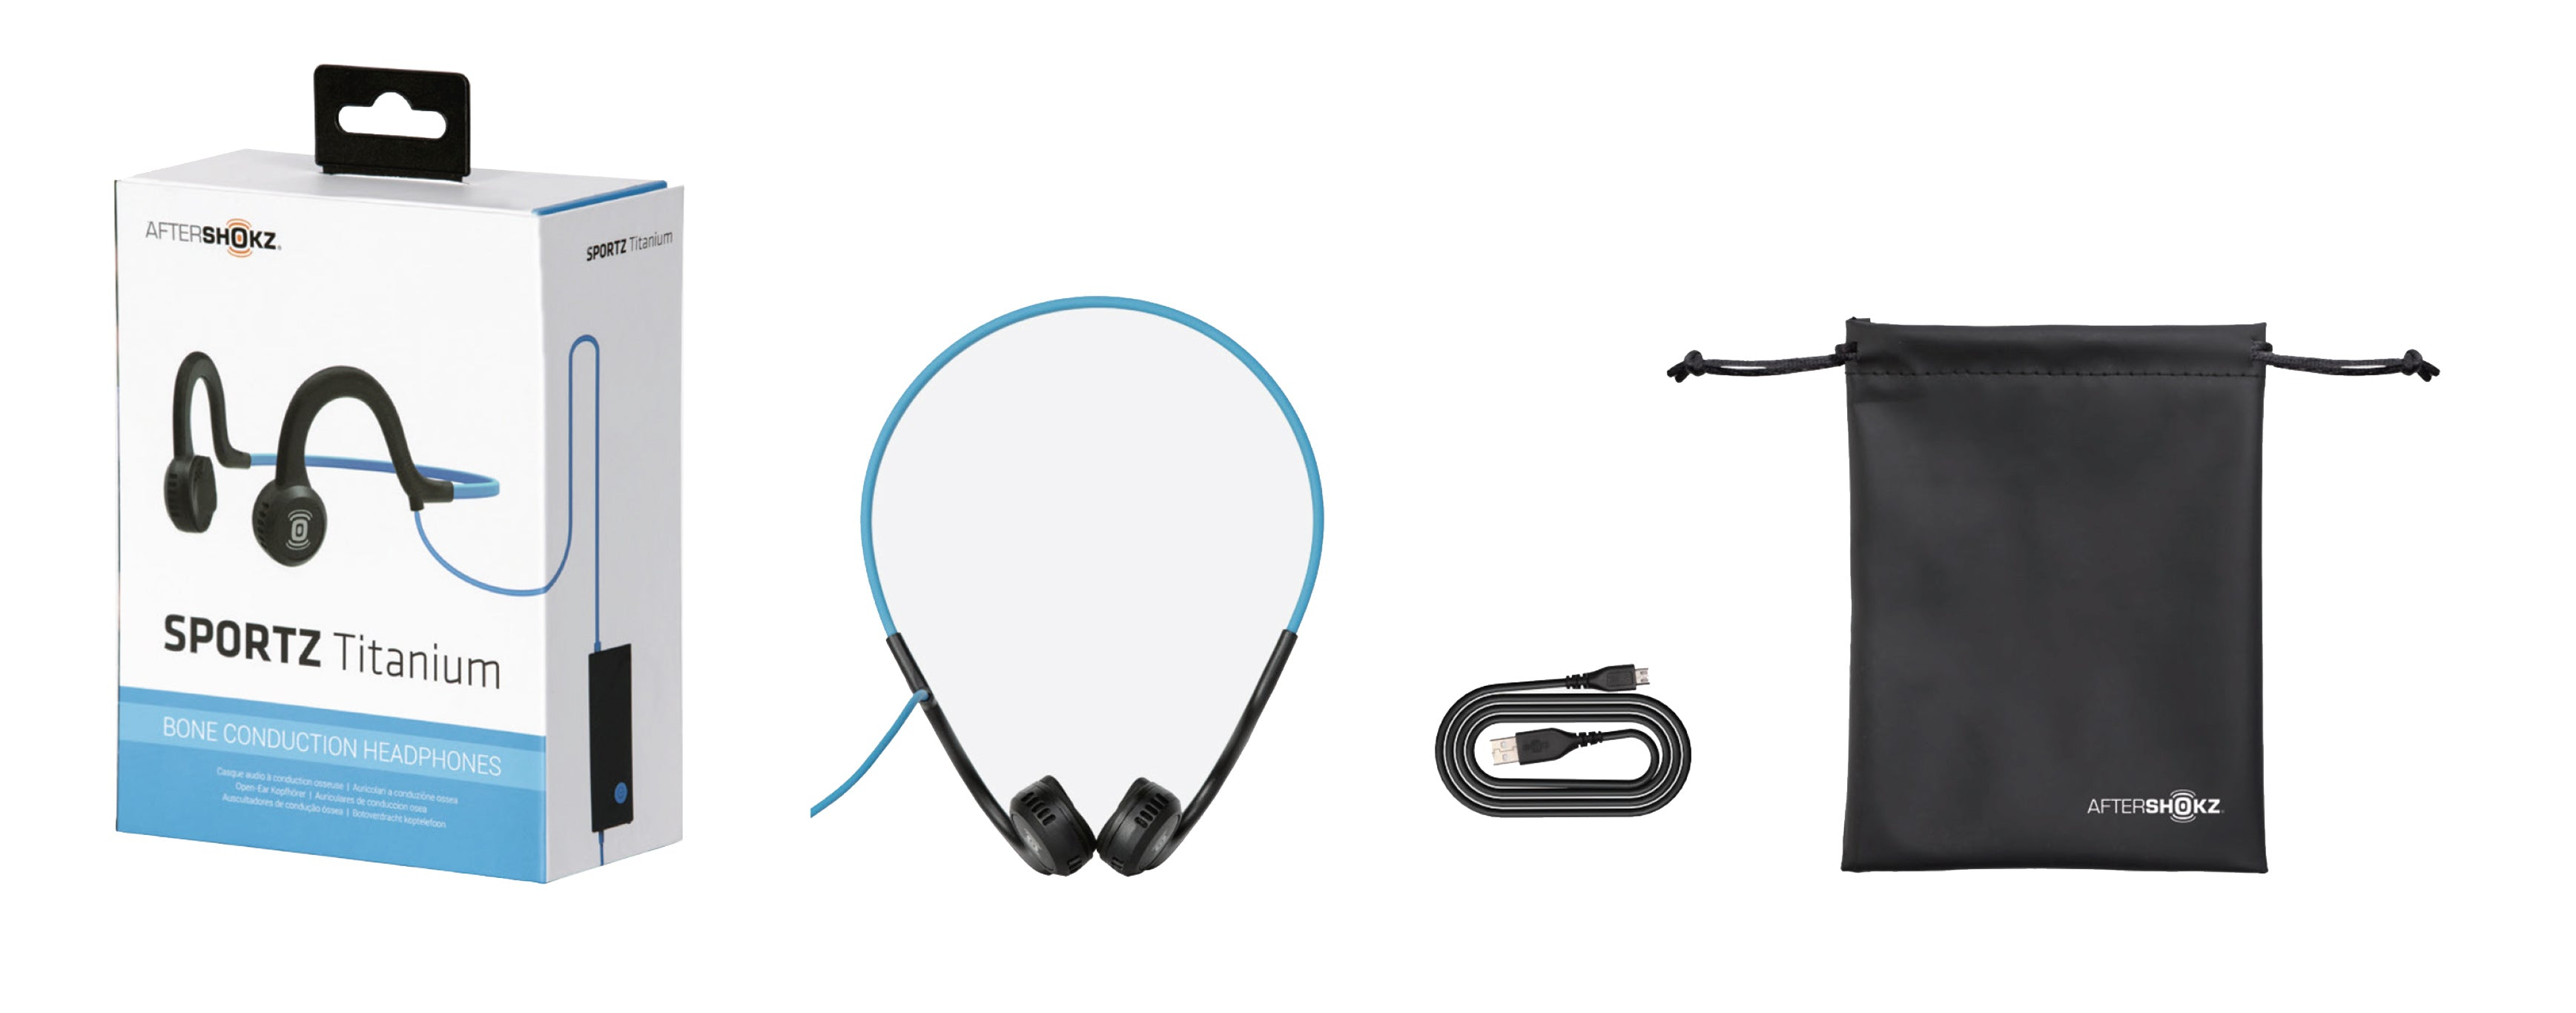 Sportz Titanium, Micro-usb charging cable, and portable pouch